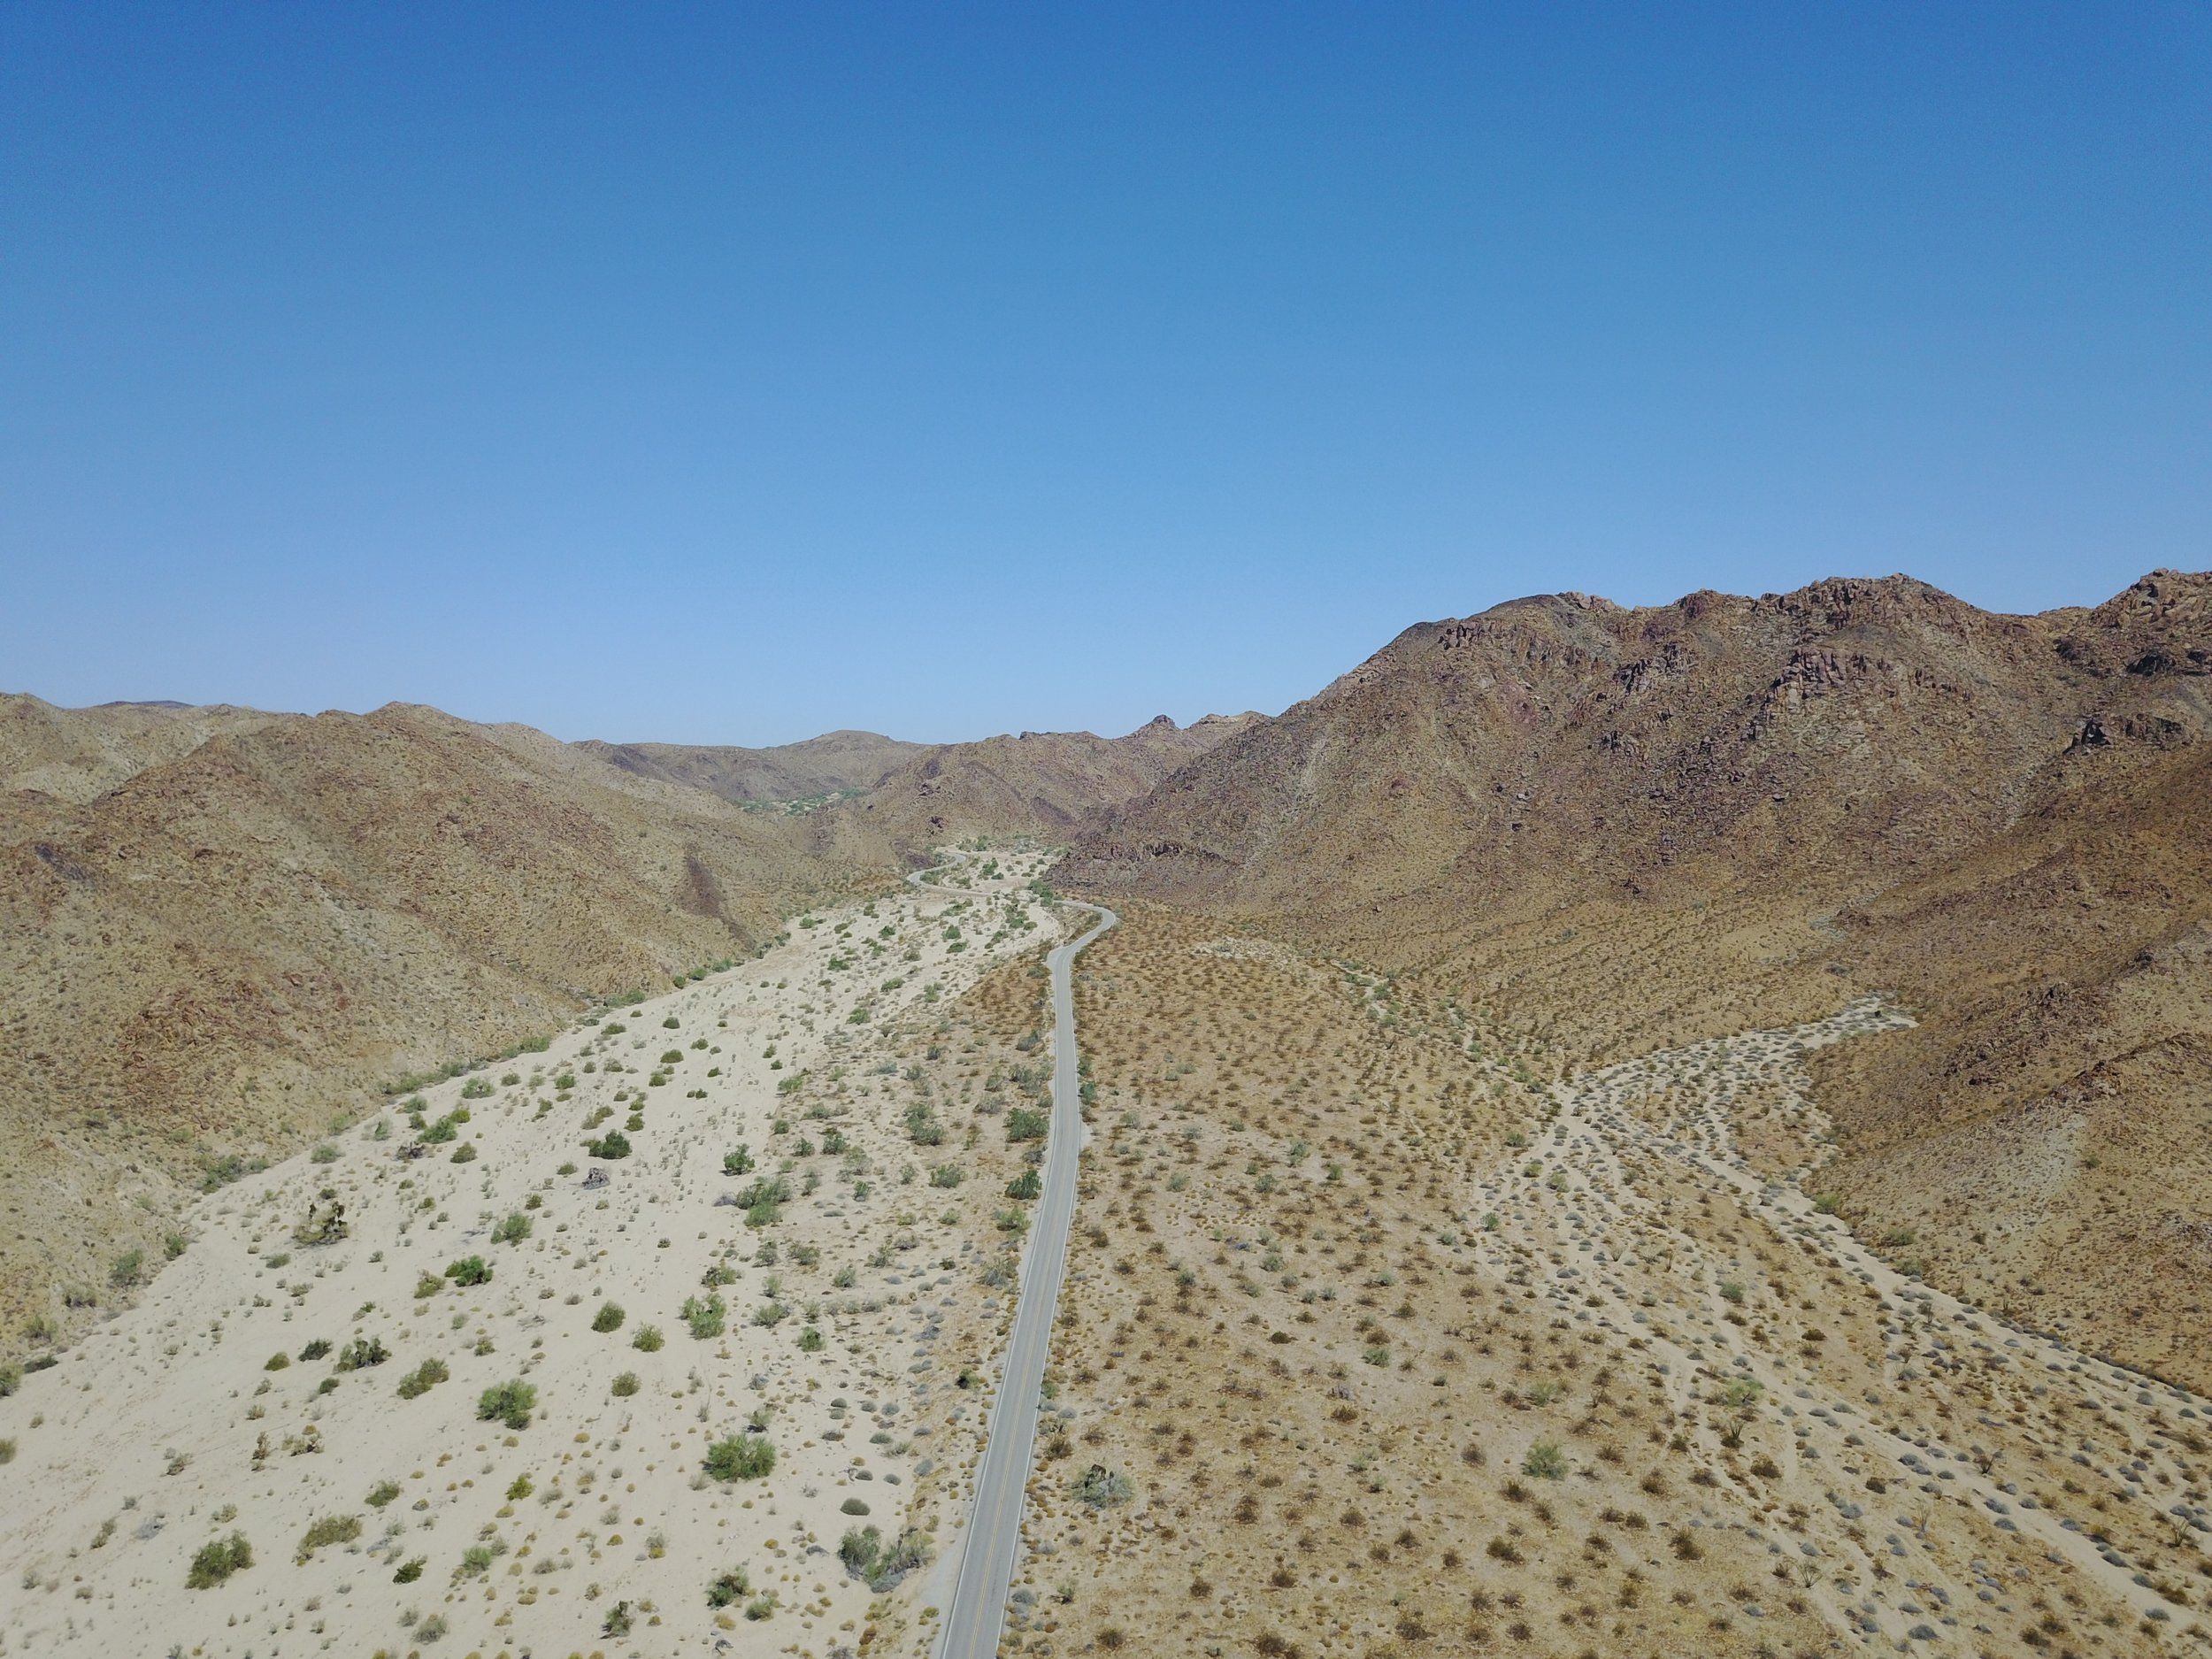 Drone footage of Joshua Tree